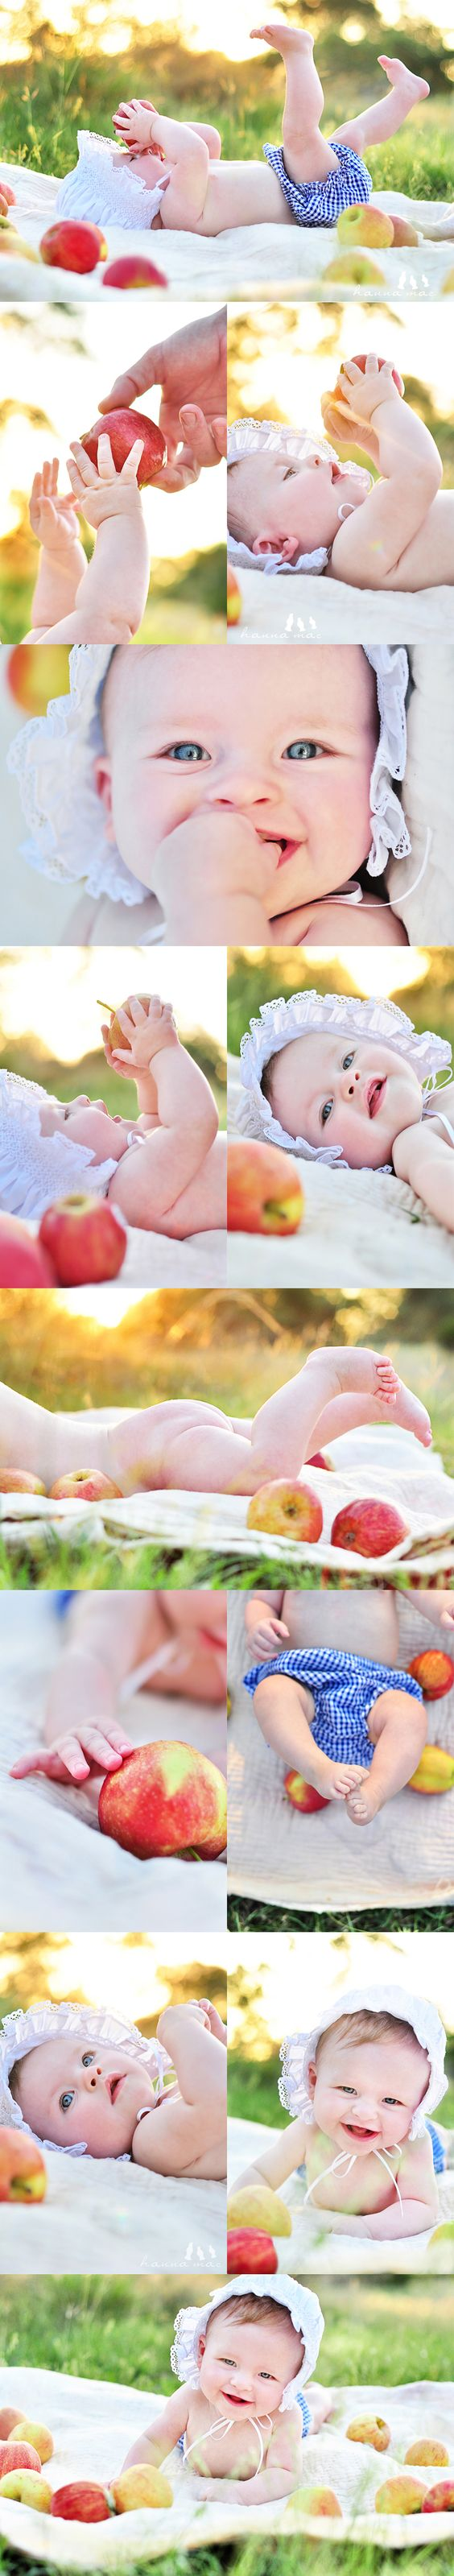 "Cute photoshoot for a baby that can't quite sit up yet.  Switch in peaches for a cute ""Georgia peach"" theme"